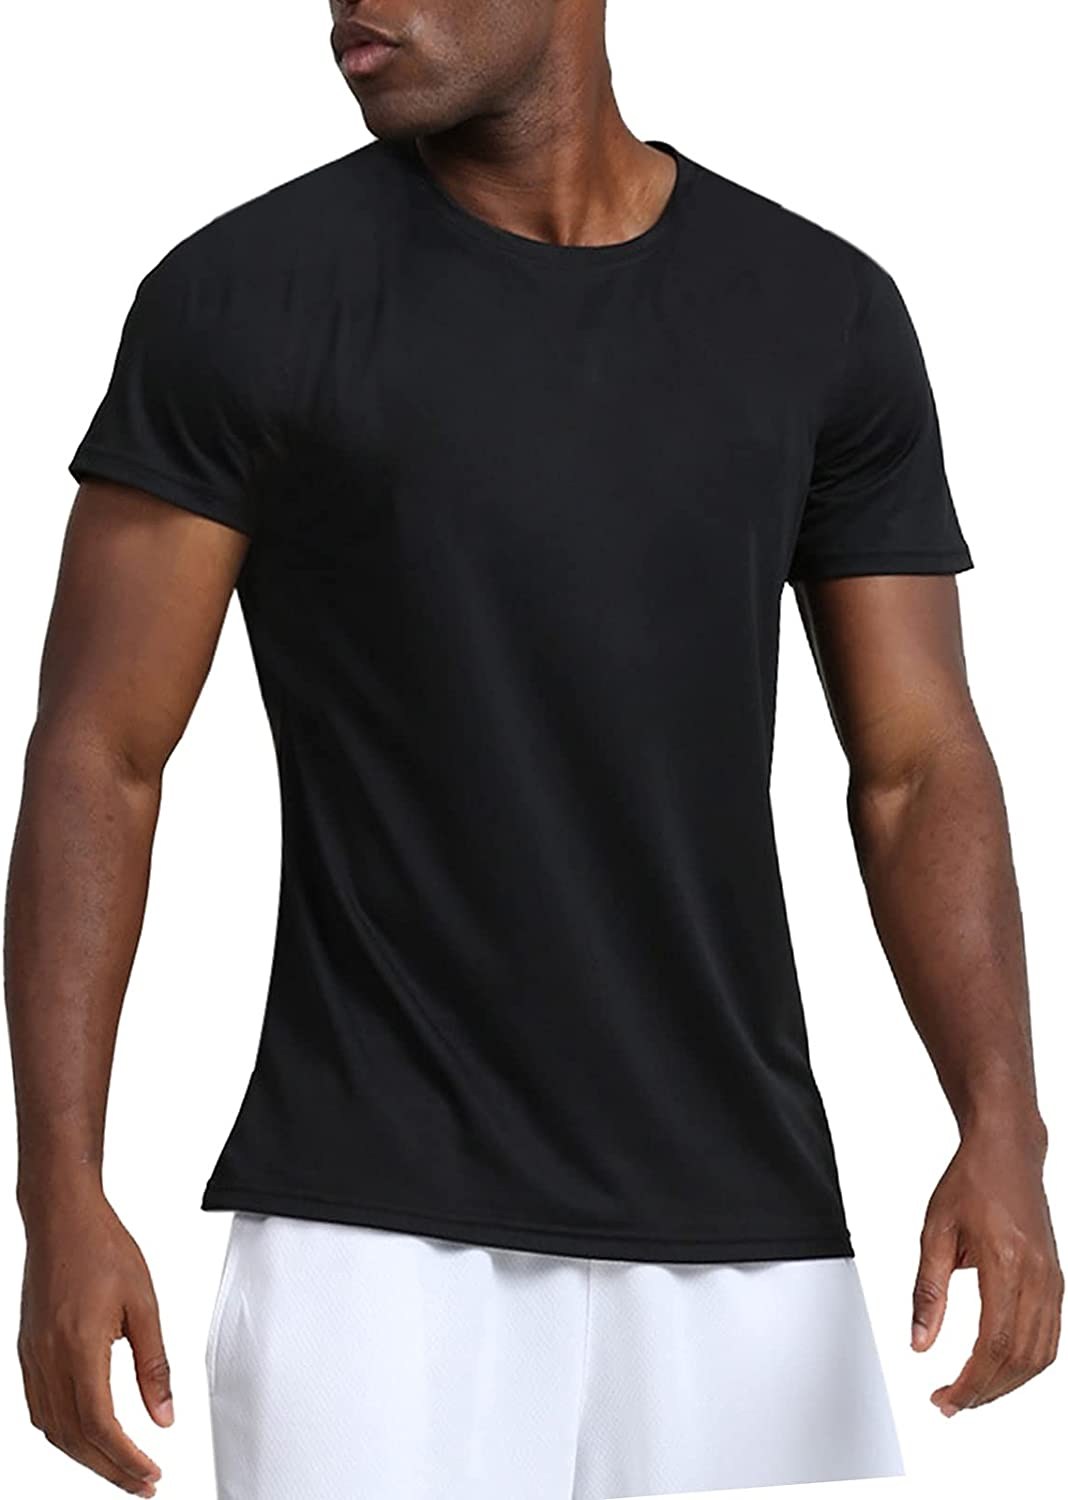 Men's Sport Shirt O-Neck Short Sleeve Solid T Shirt Summer Leisure Quick Drying Blouse Running Casual Fit Tee Top